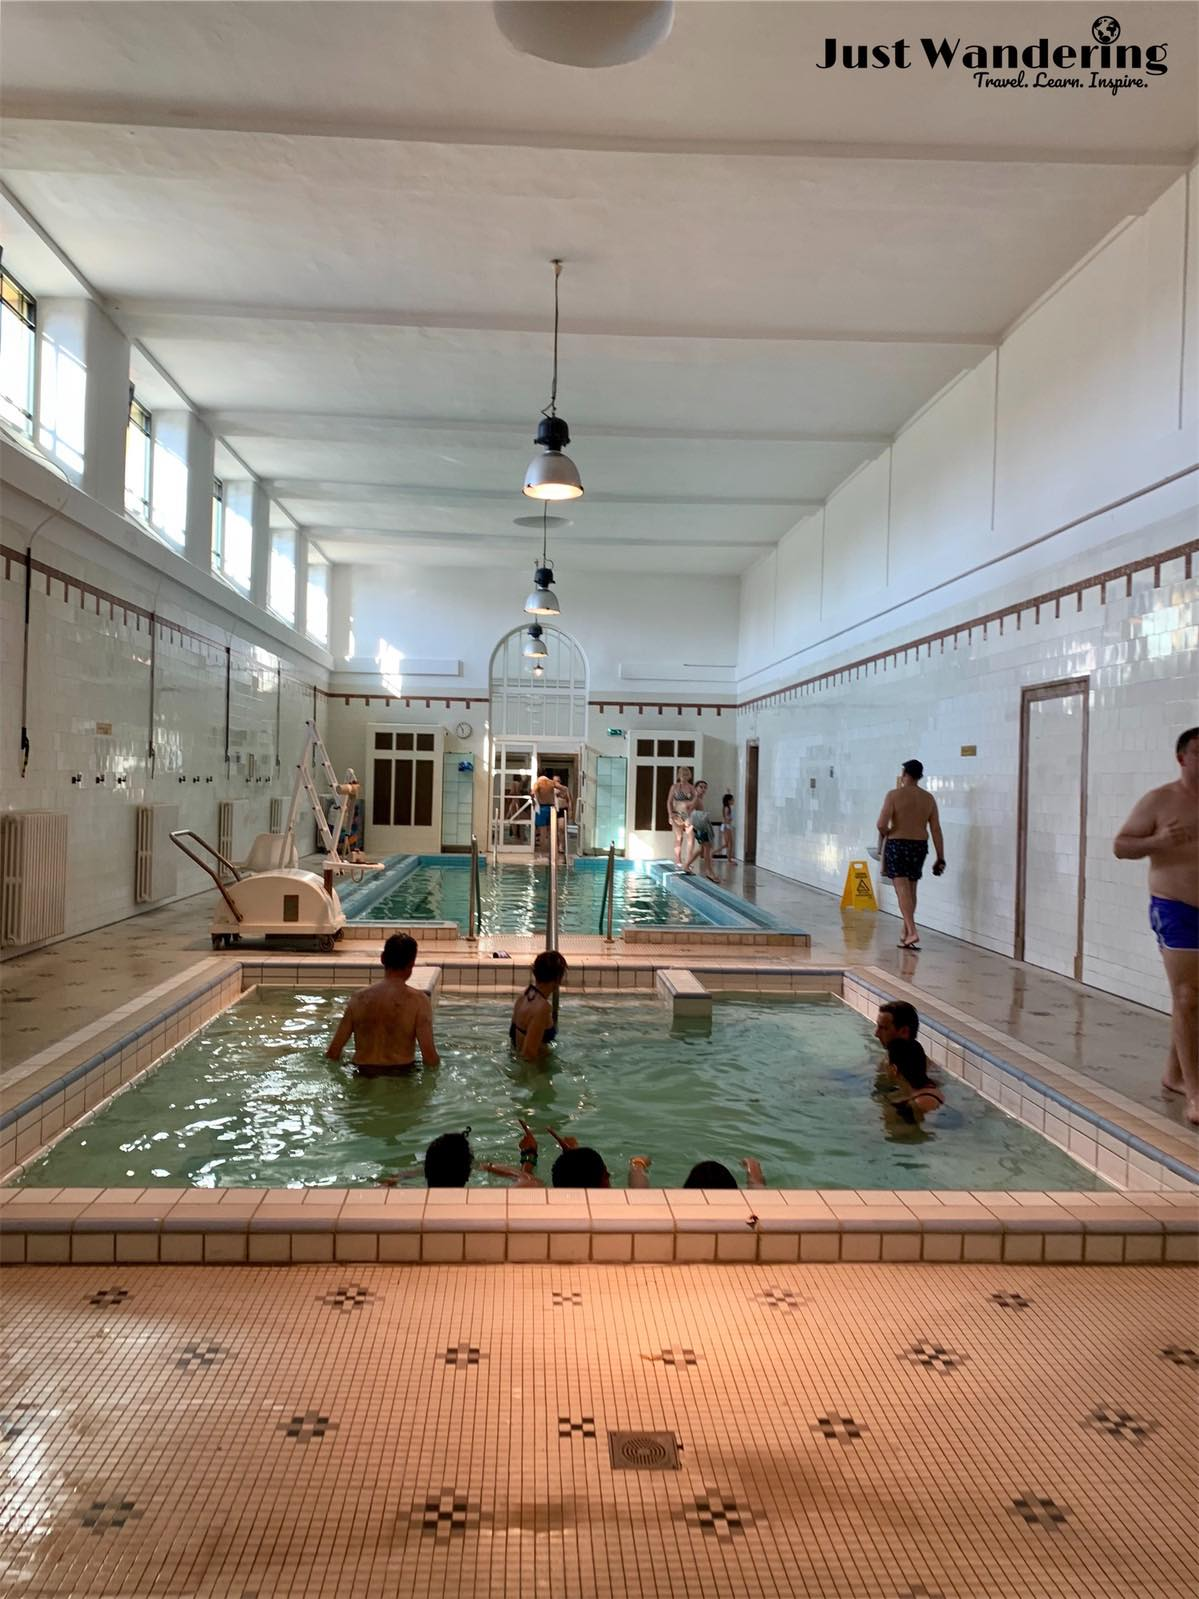 - Don't be surprised as you venture into the indoor baths how prevalent it is for locals to partake in aqua-calisthenics. Seems like most baths offer this, along with pools of different temperatures, saunas, steam rooms, and other facilities.